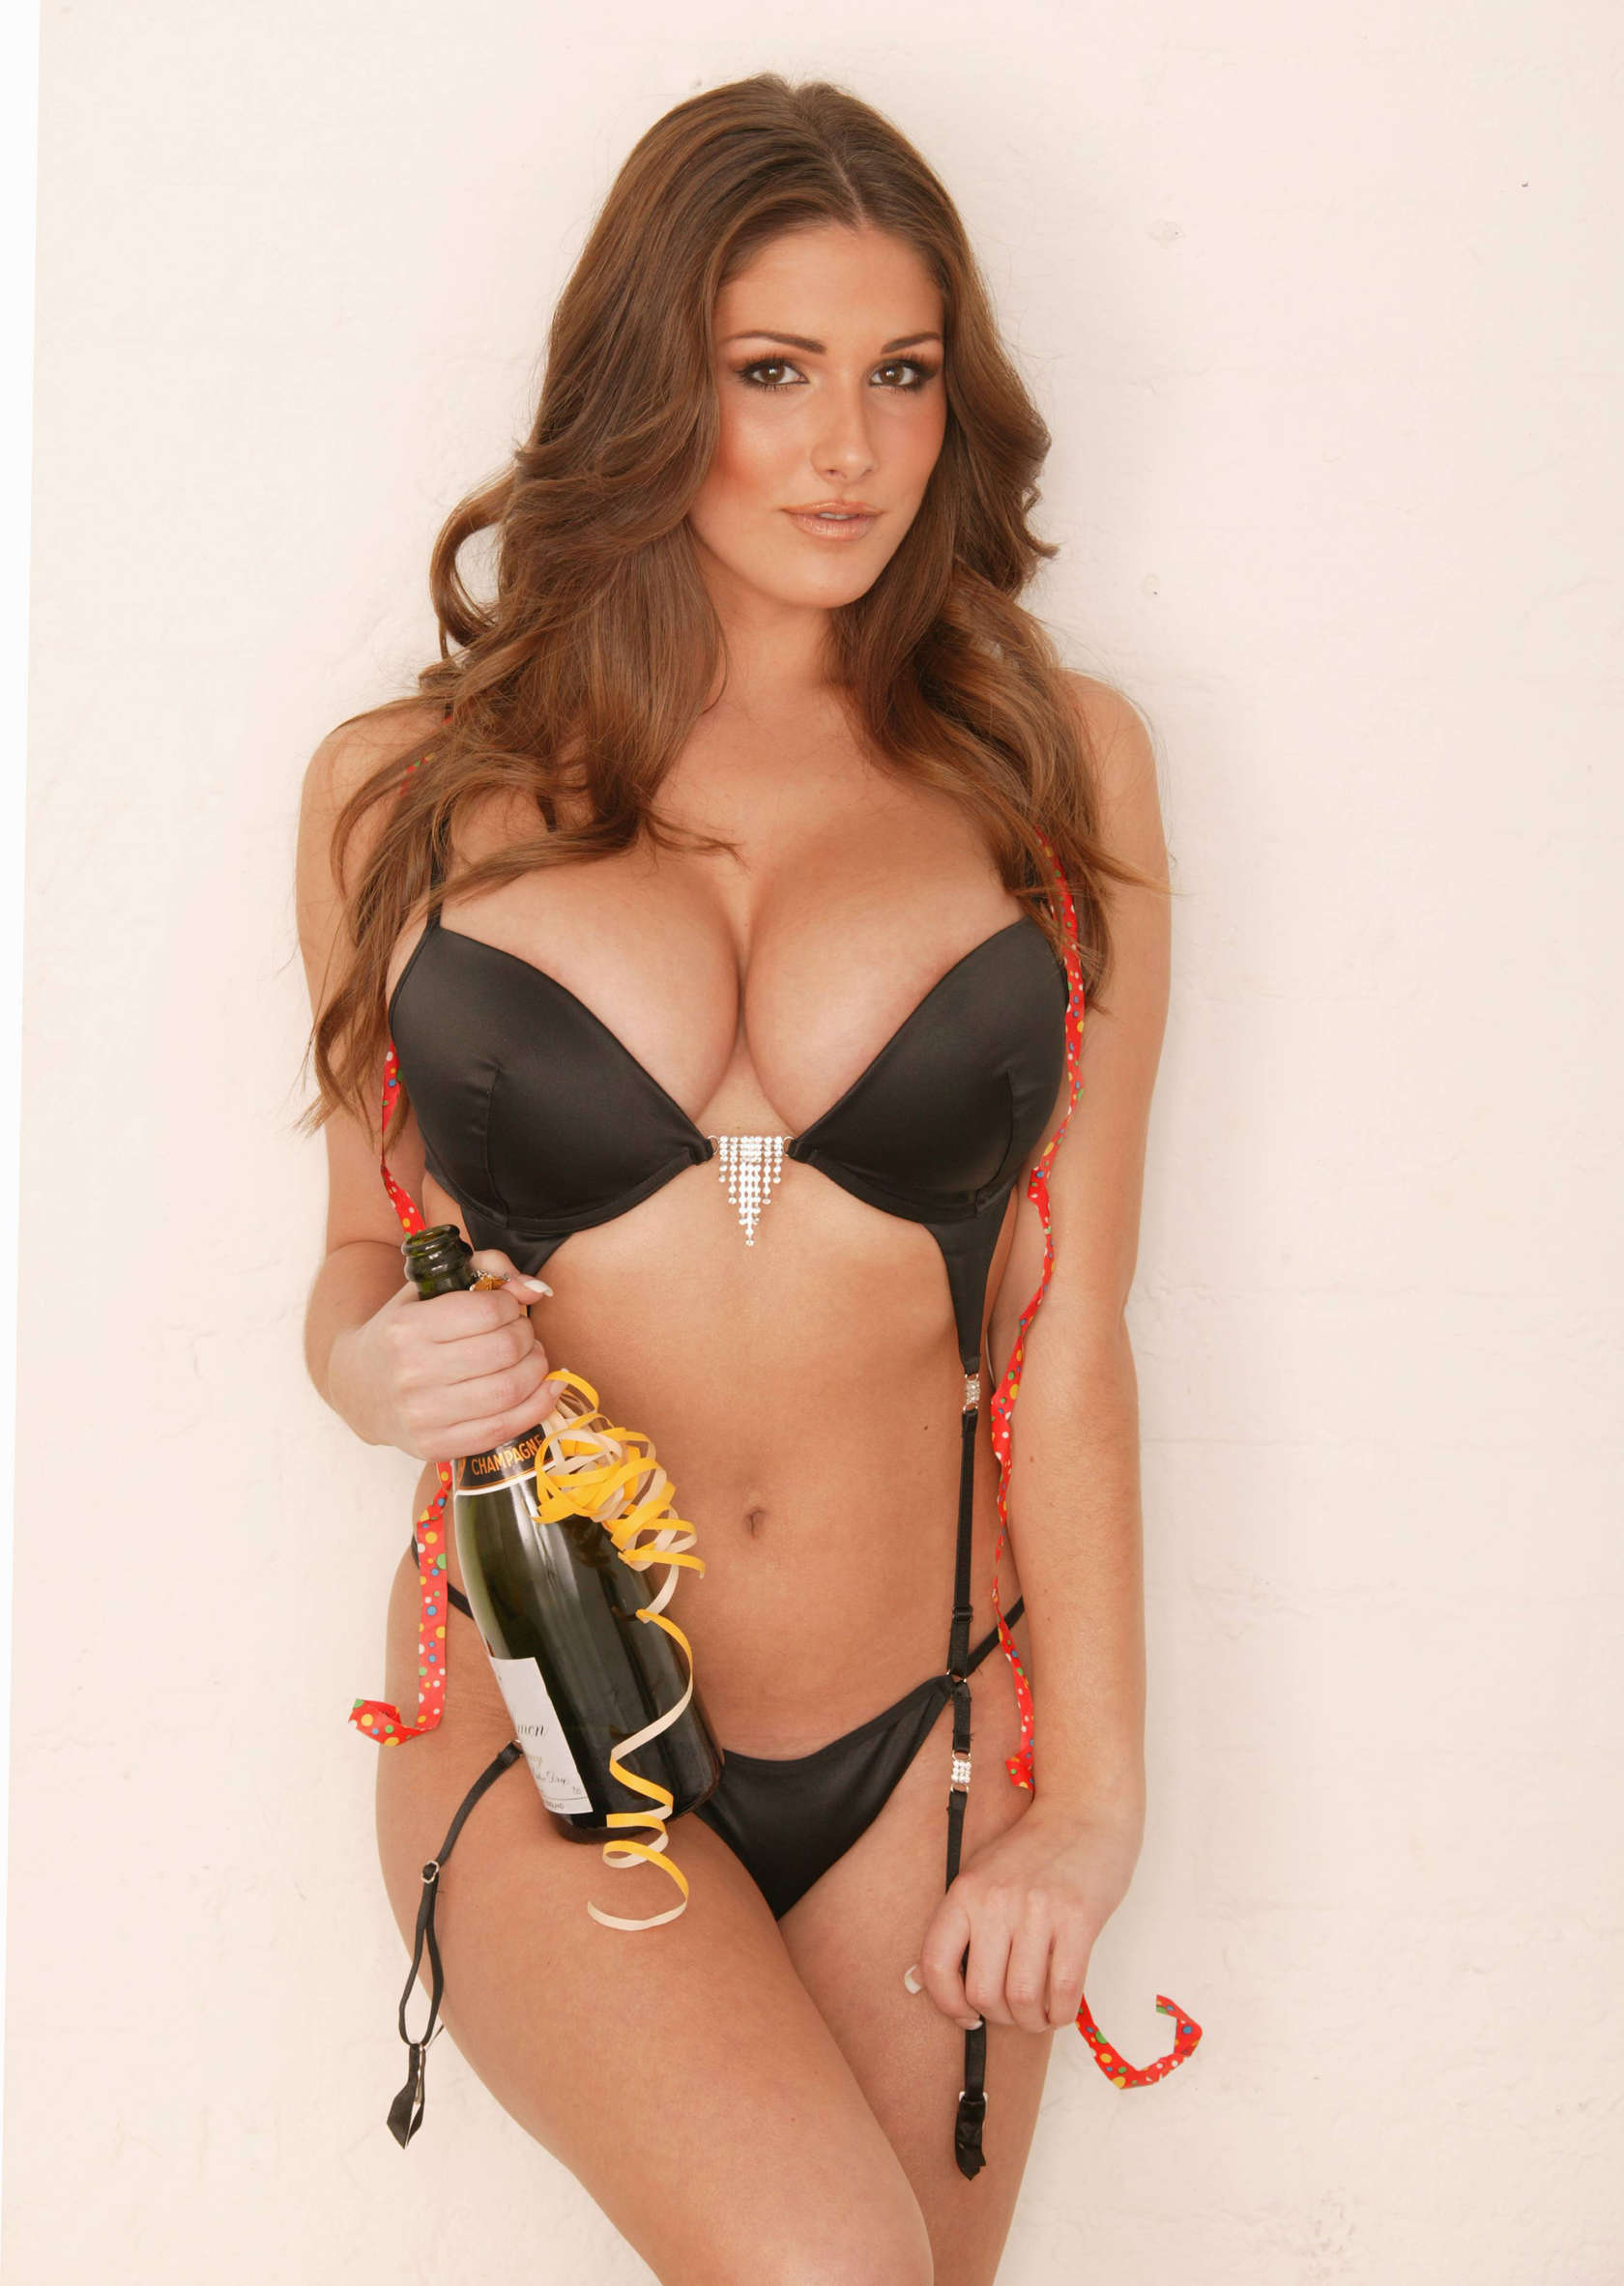 lucy pinder hot and - photo #12